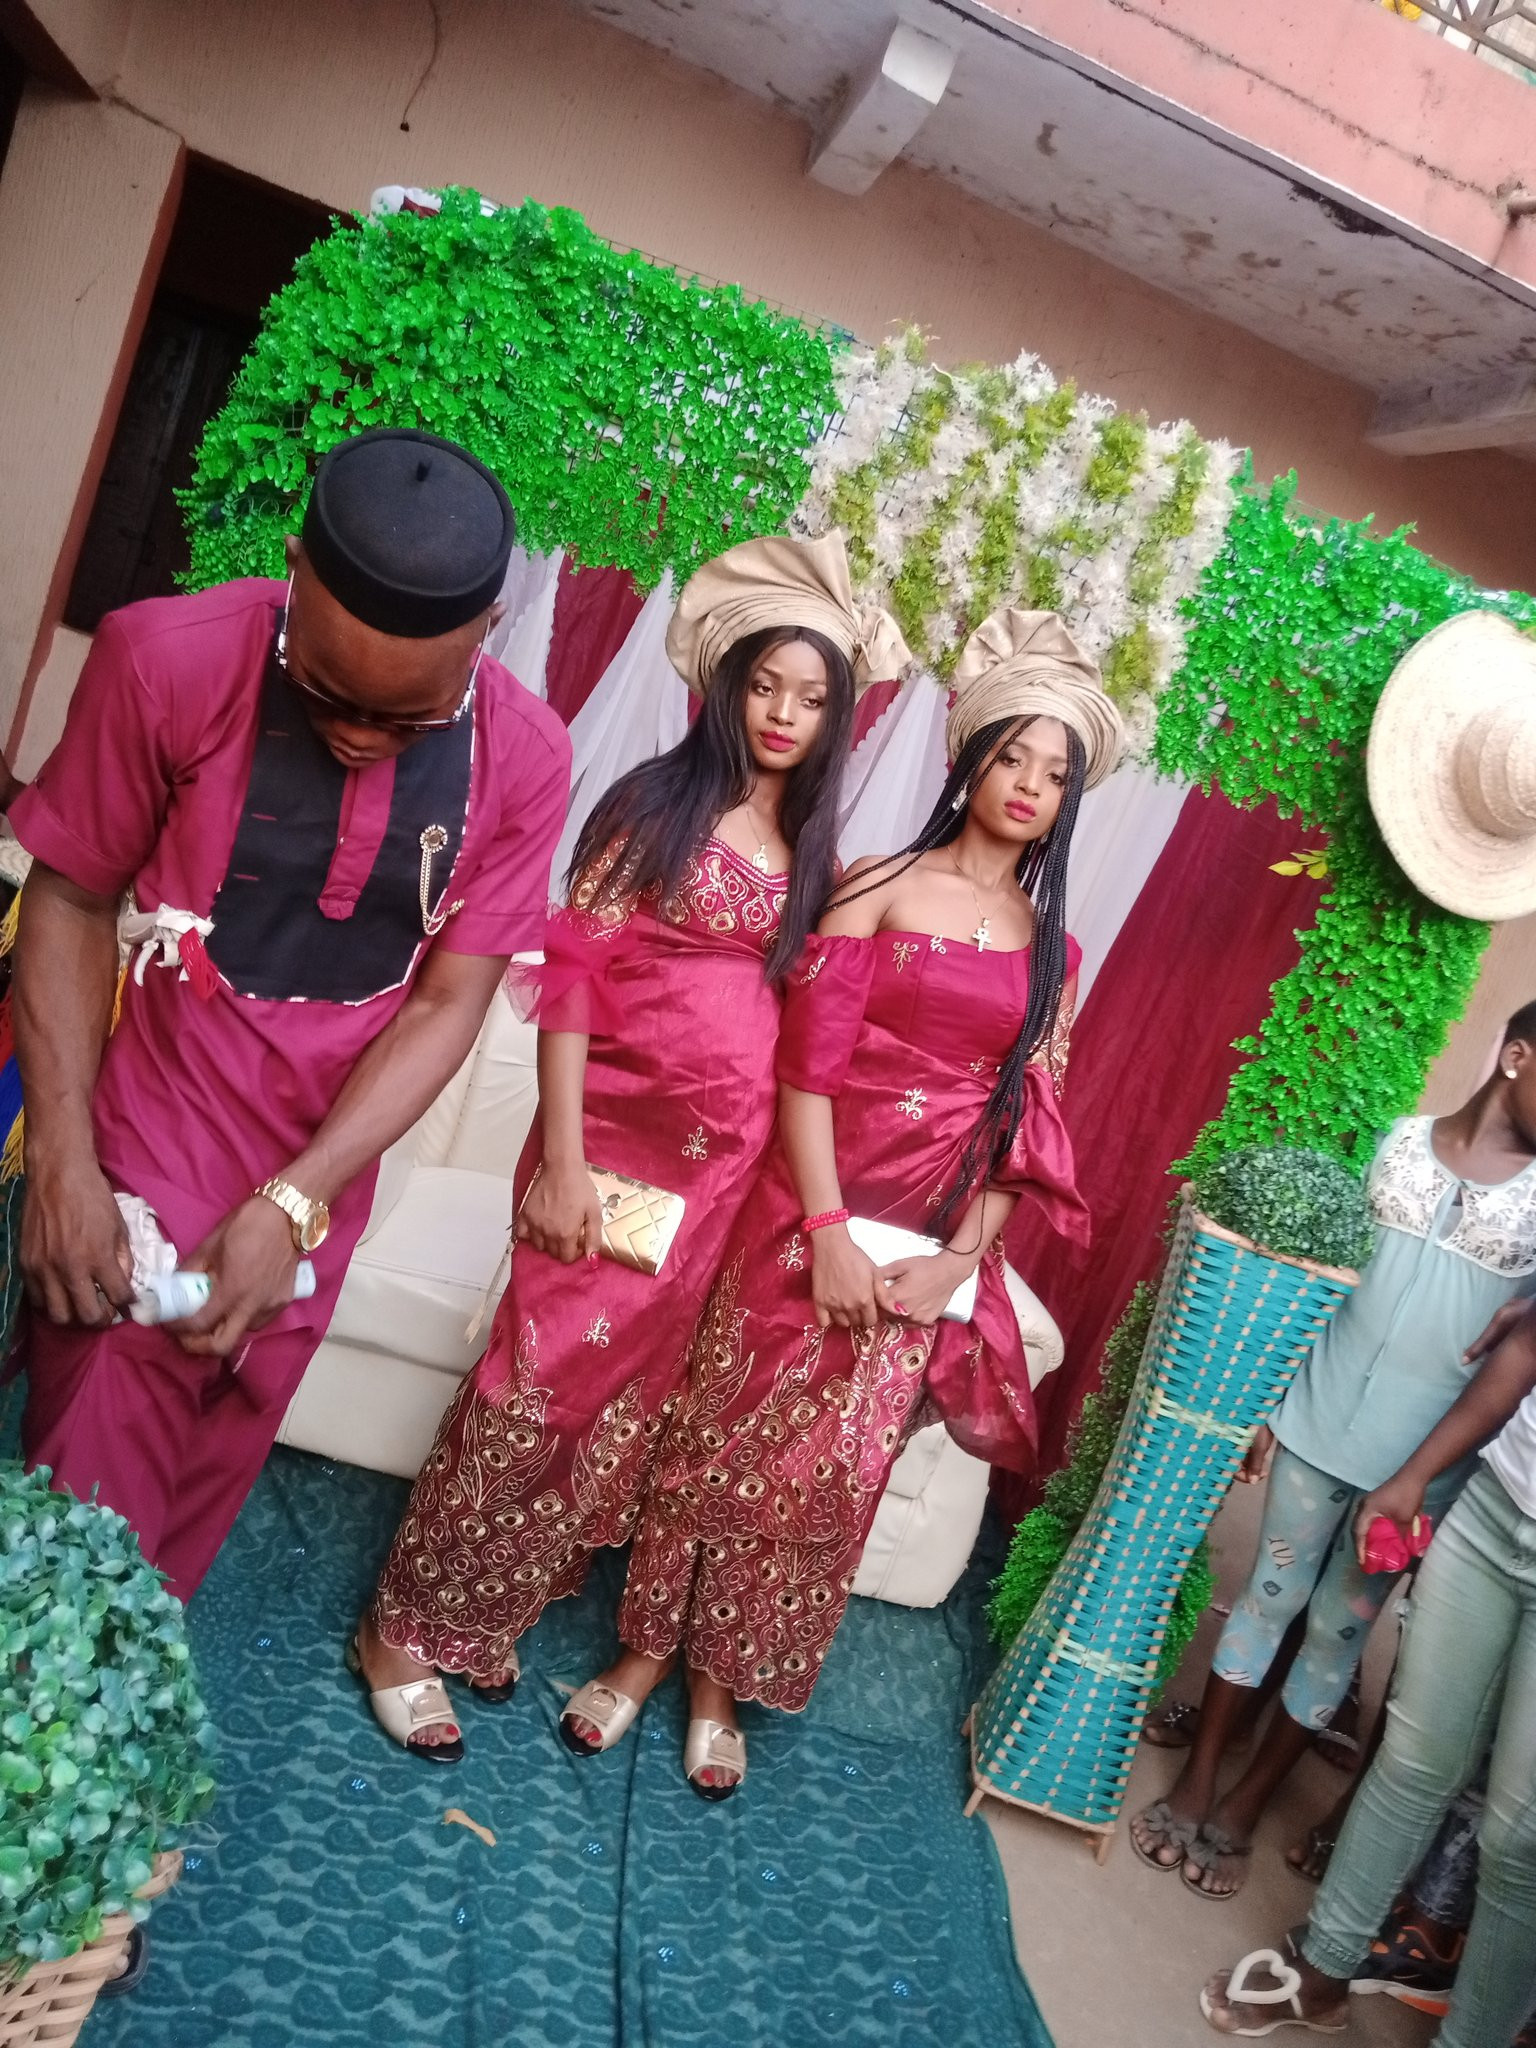 Nigerian man marries twins because 'they cant live without each other' lindaikejisblog 4